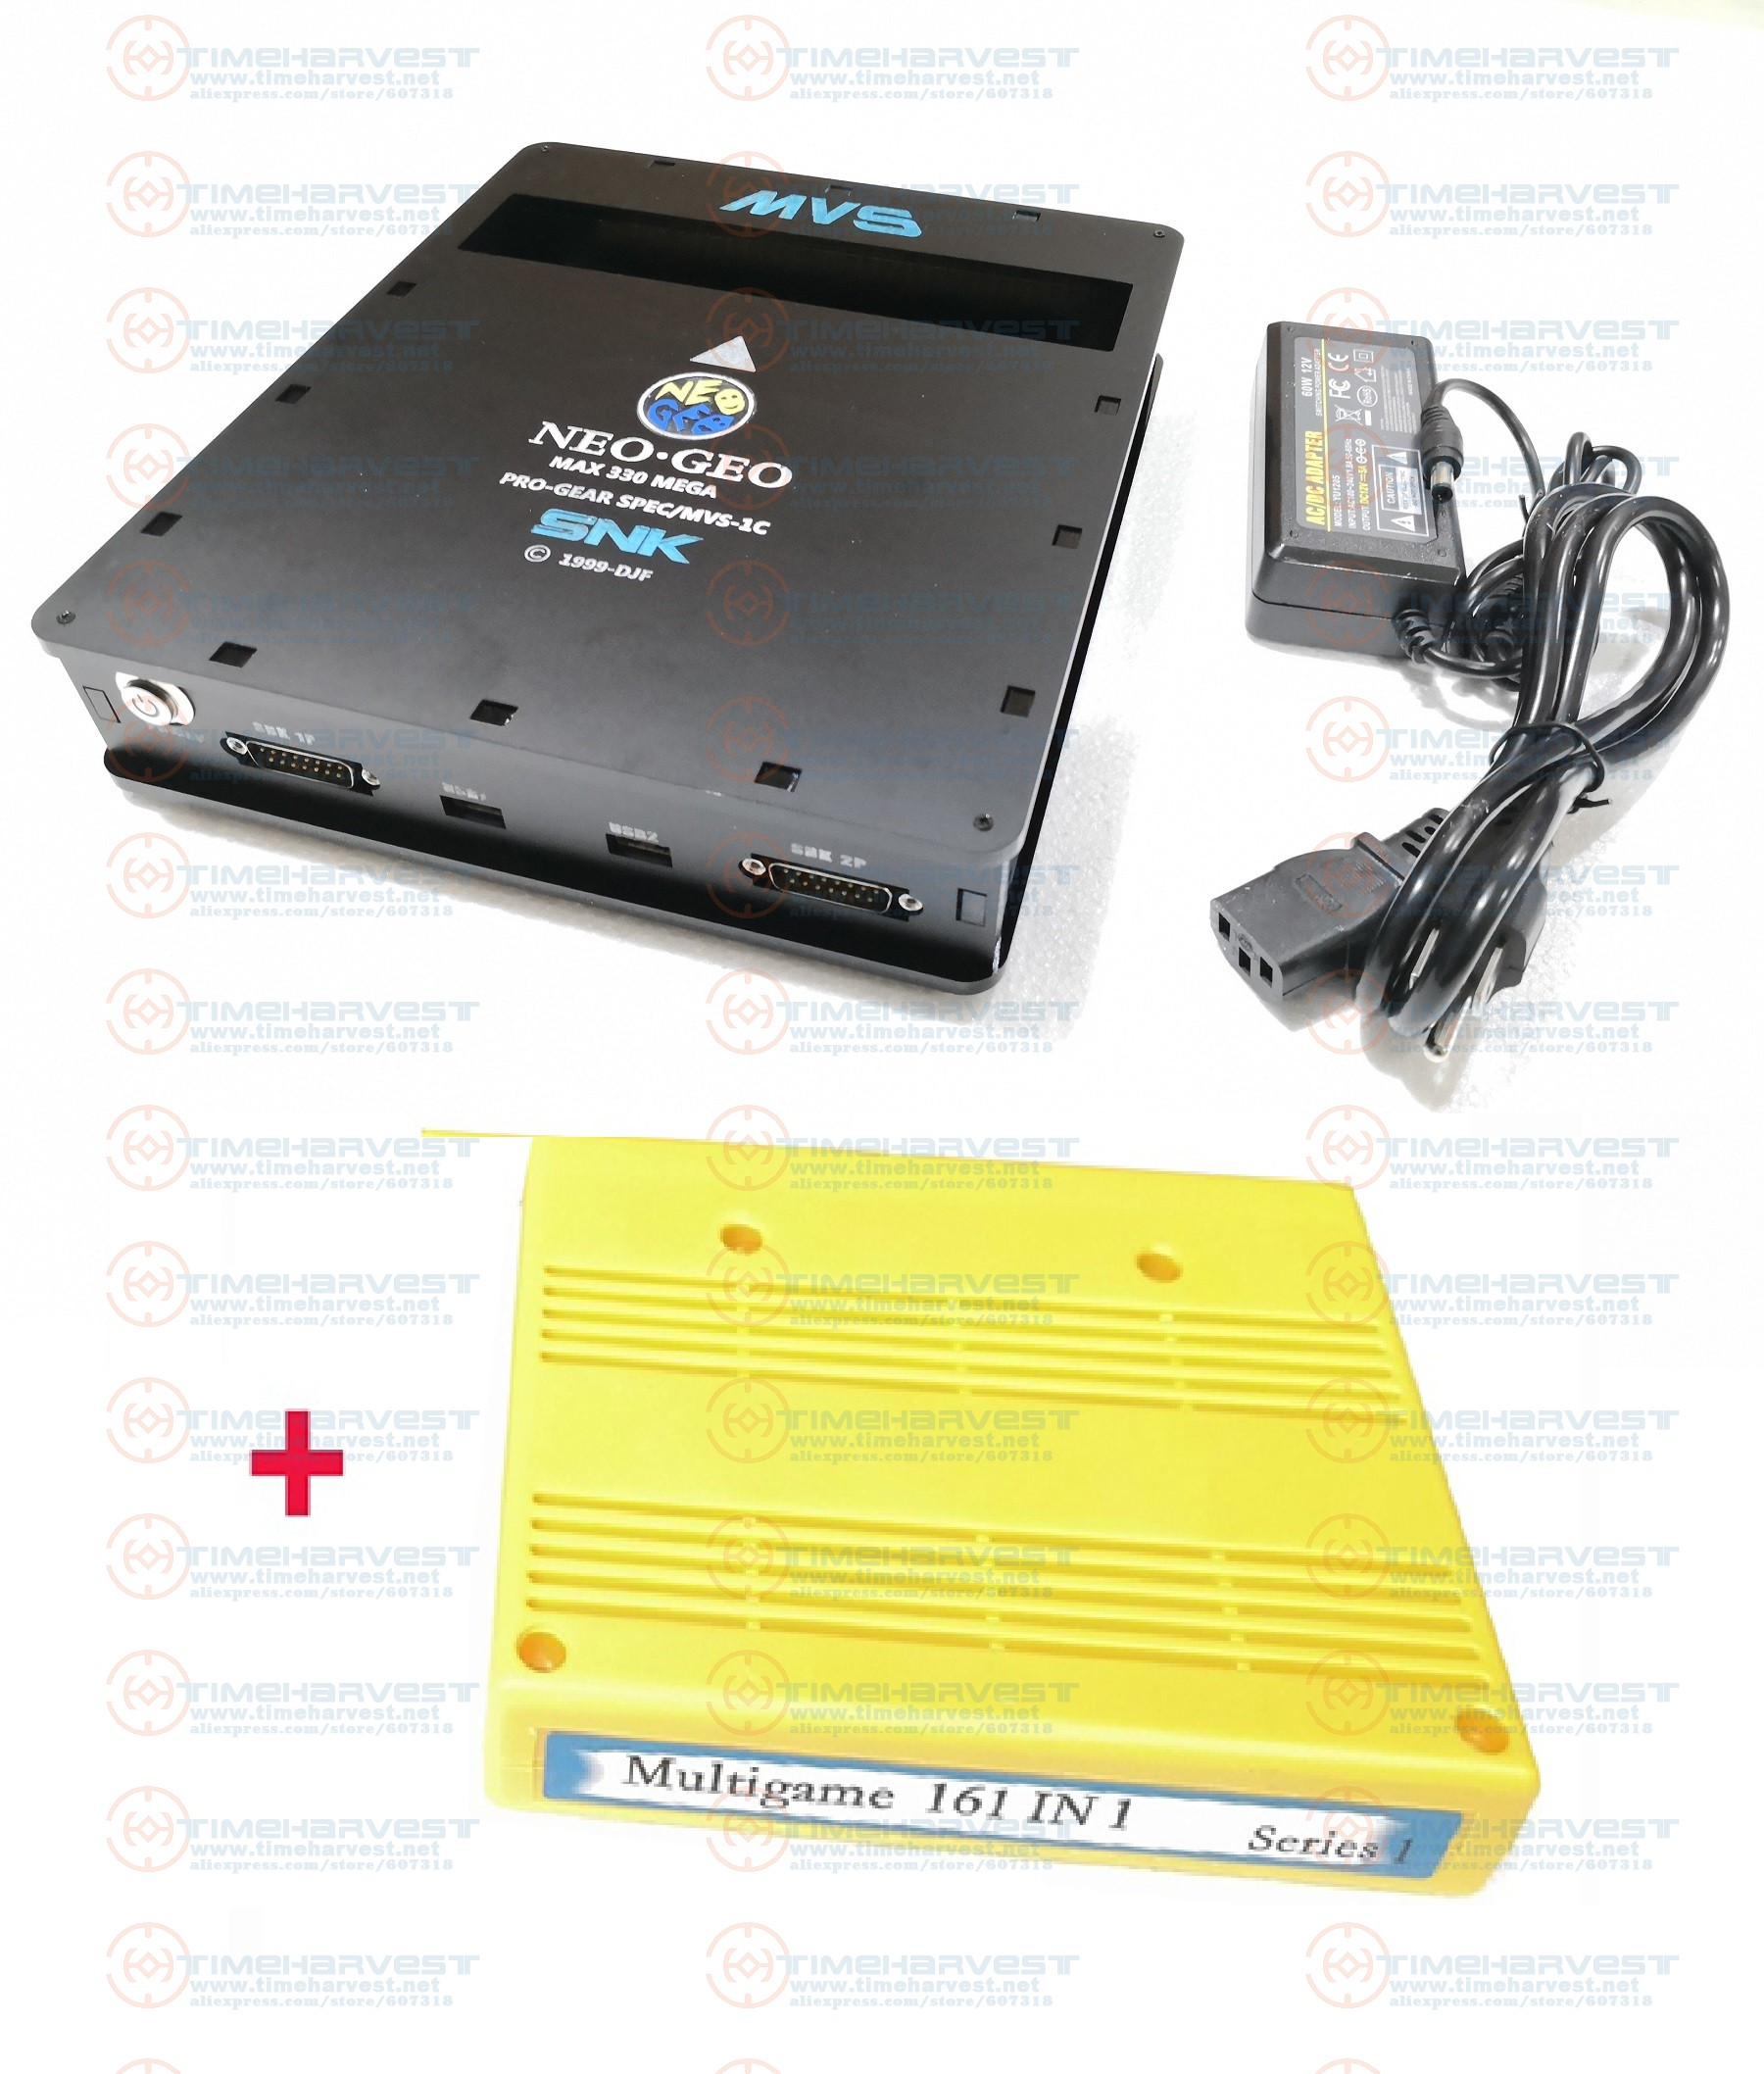 New Version JAMMA USB <font><b>CBOX</b></font> SNK Super CMVS 1C to DB15 SNK Joypad & USB Gamepad with 161 in 1 Game Cartridge for Family play time image